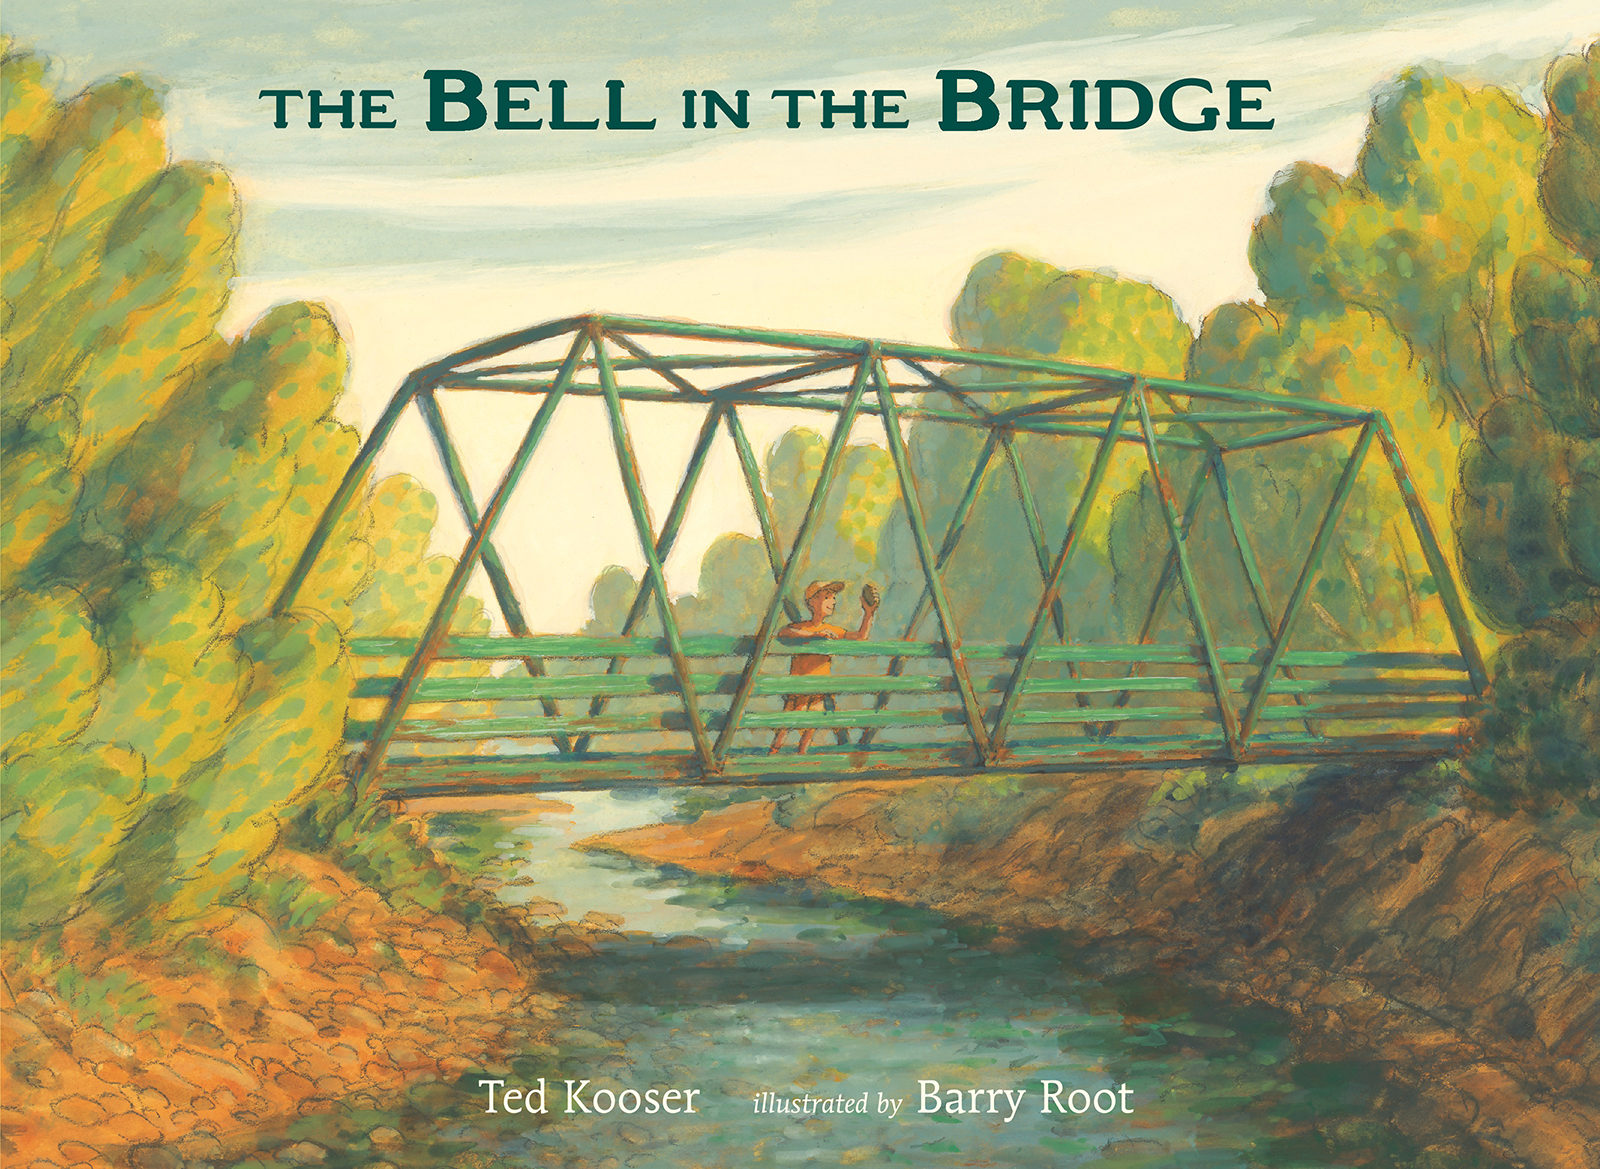 Cover of Ted Kooser's new picture book, The Bell in the Bridge